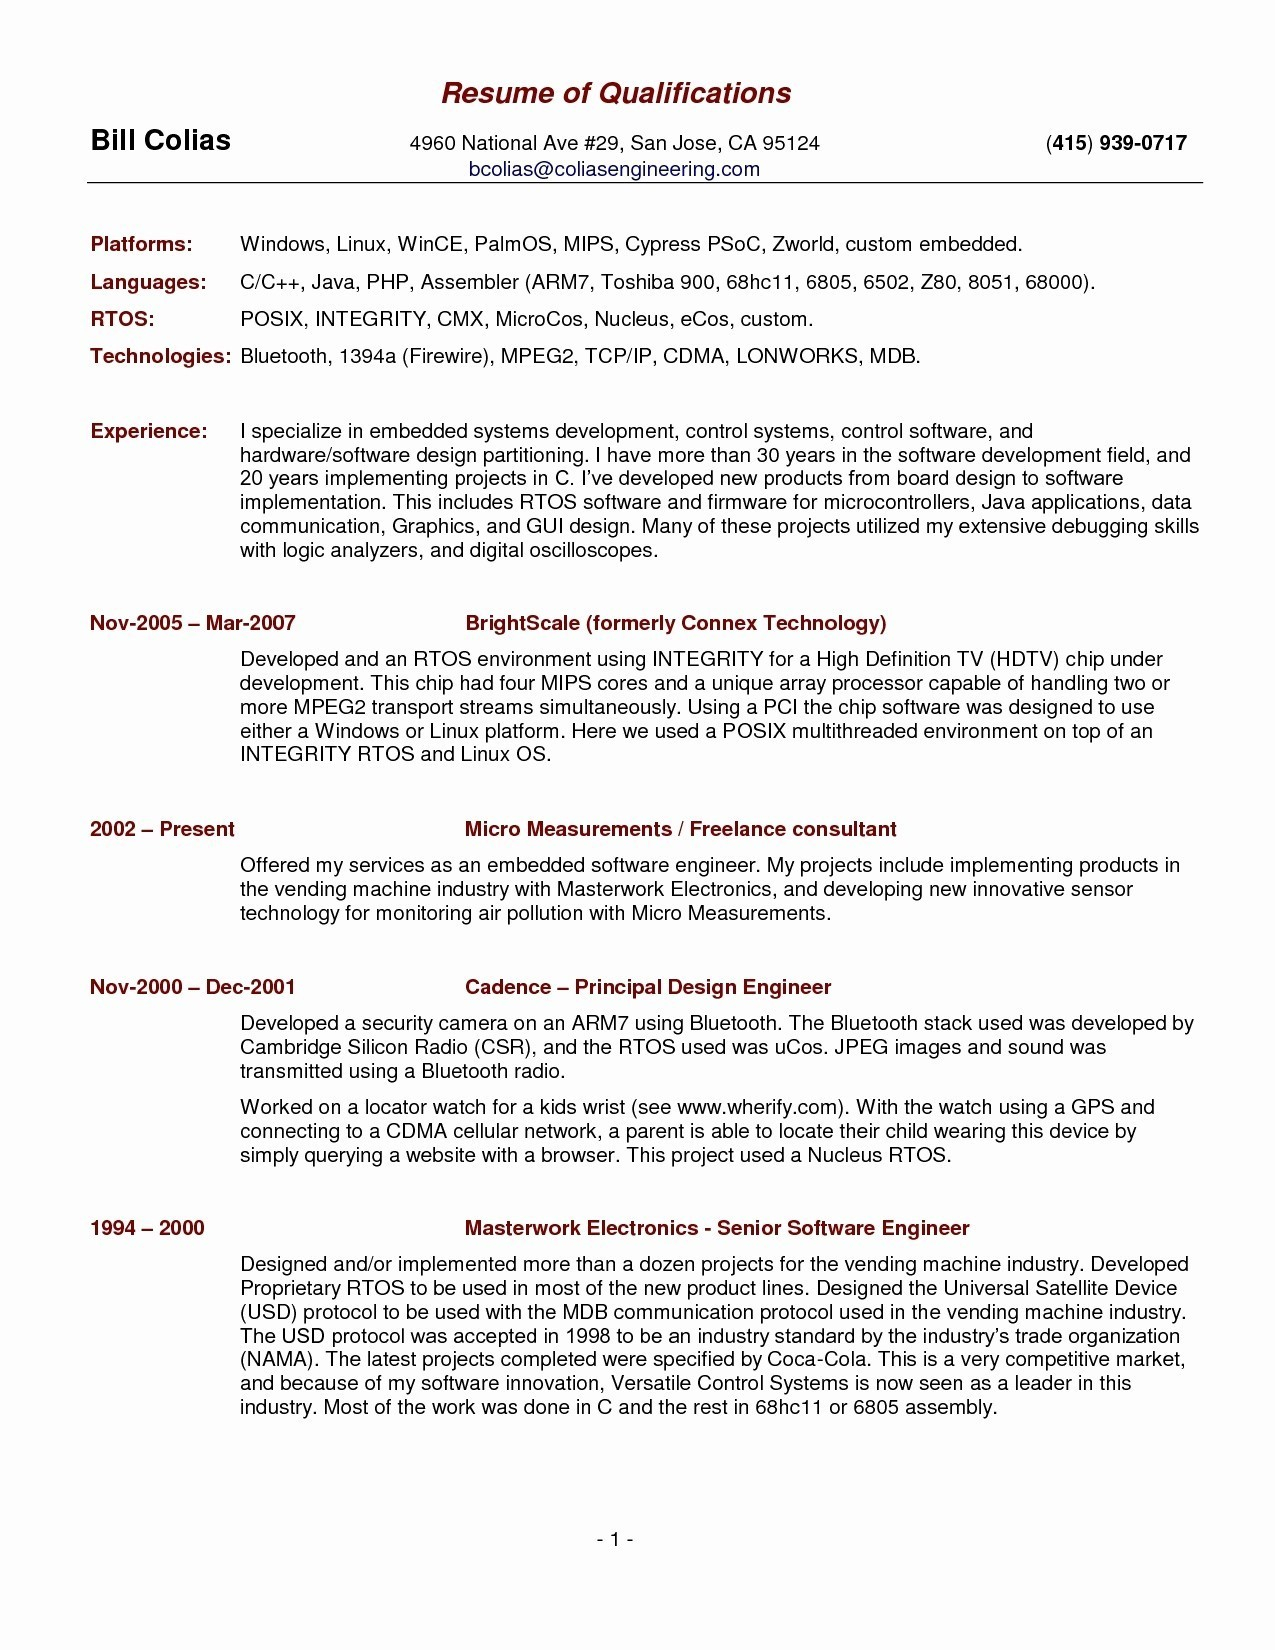 Downloadable Resume Templates for Microsoft Word - Resume format Download Fresh Lovely Pr Resume Template Elegant